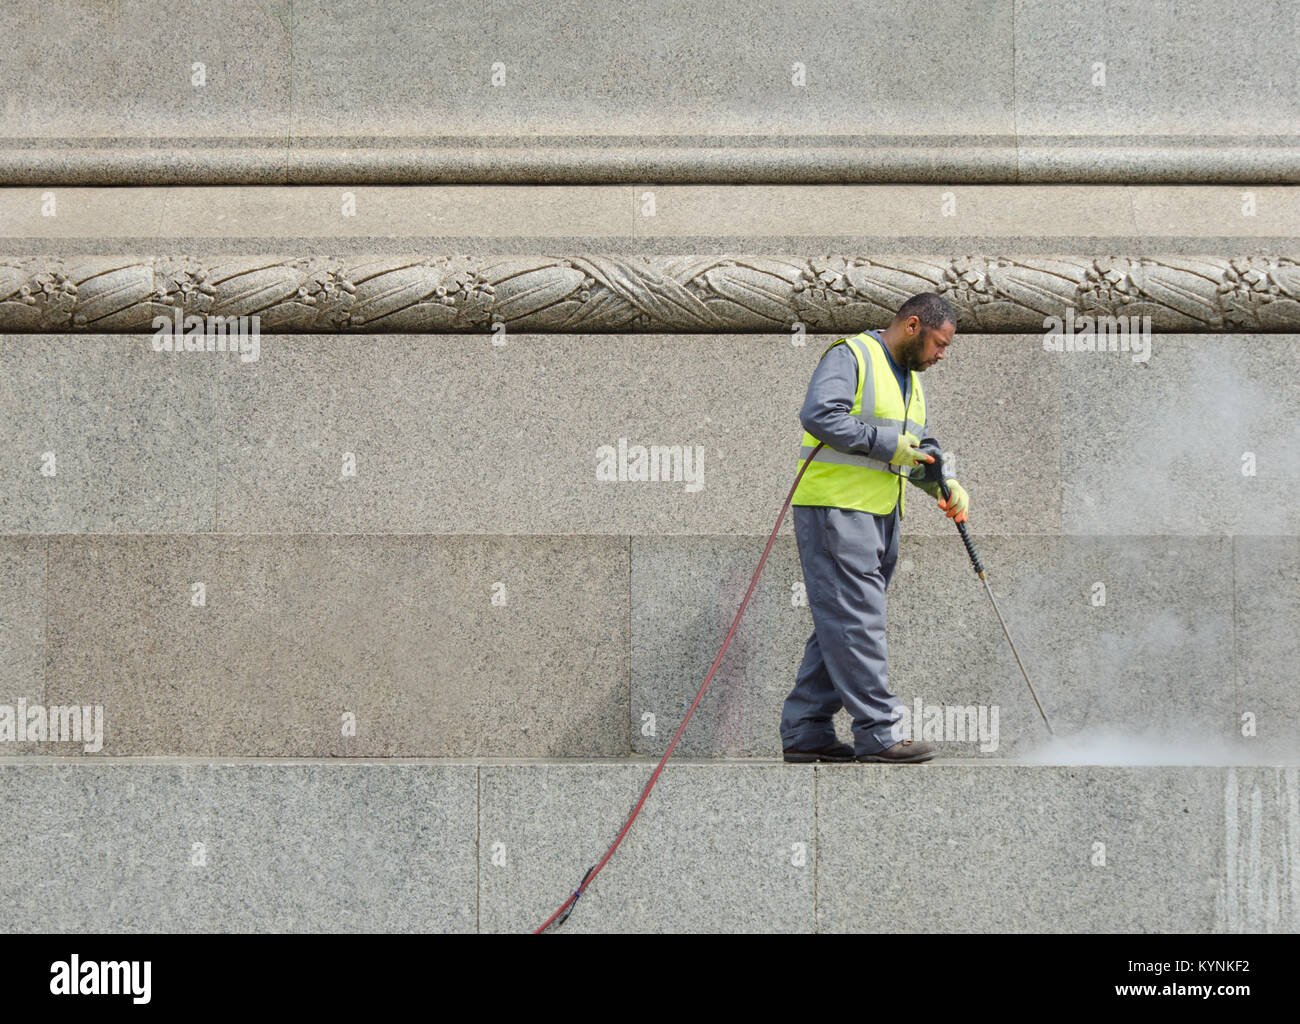 London, England, UK. Man cleaning the base of Nelson's Column with a pressure washer - Stock Image